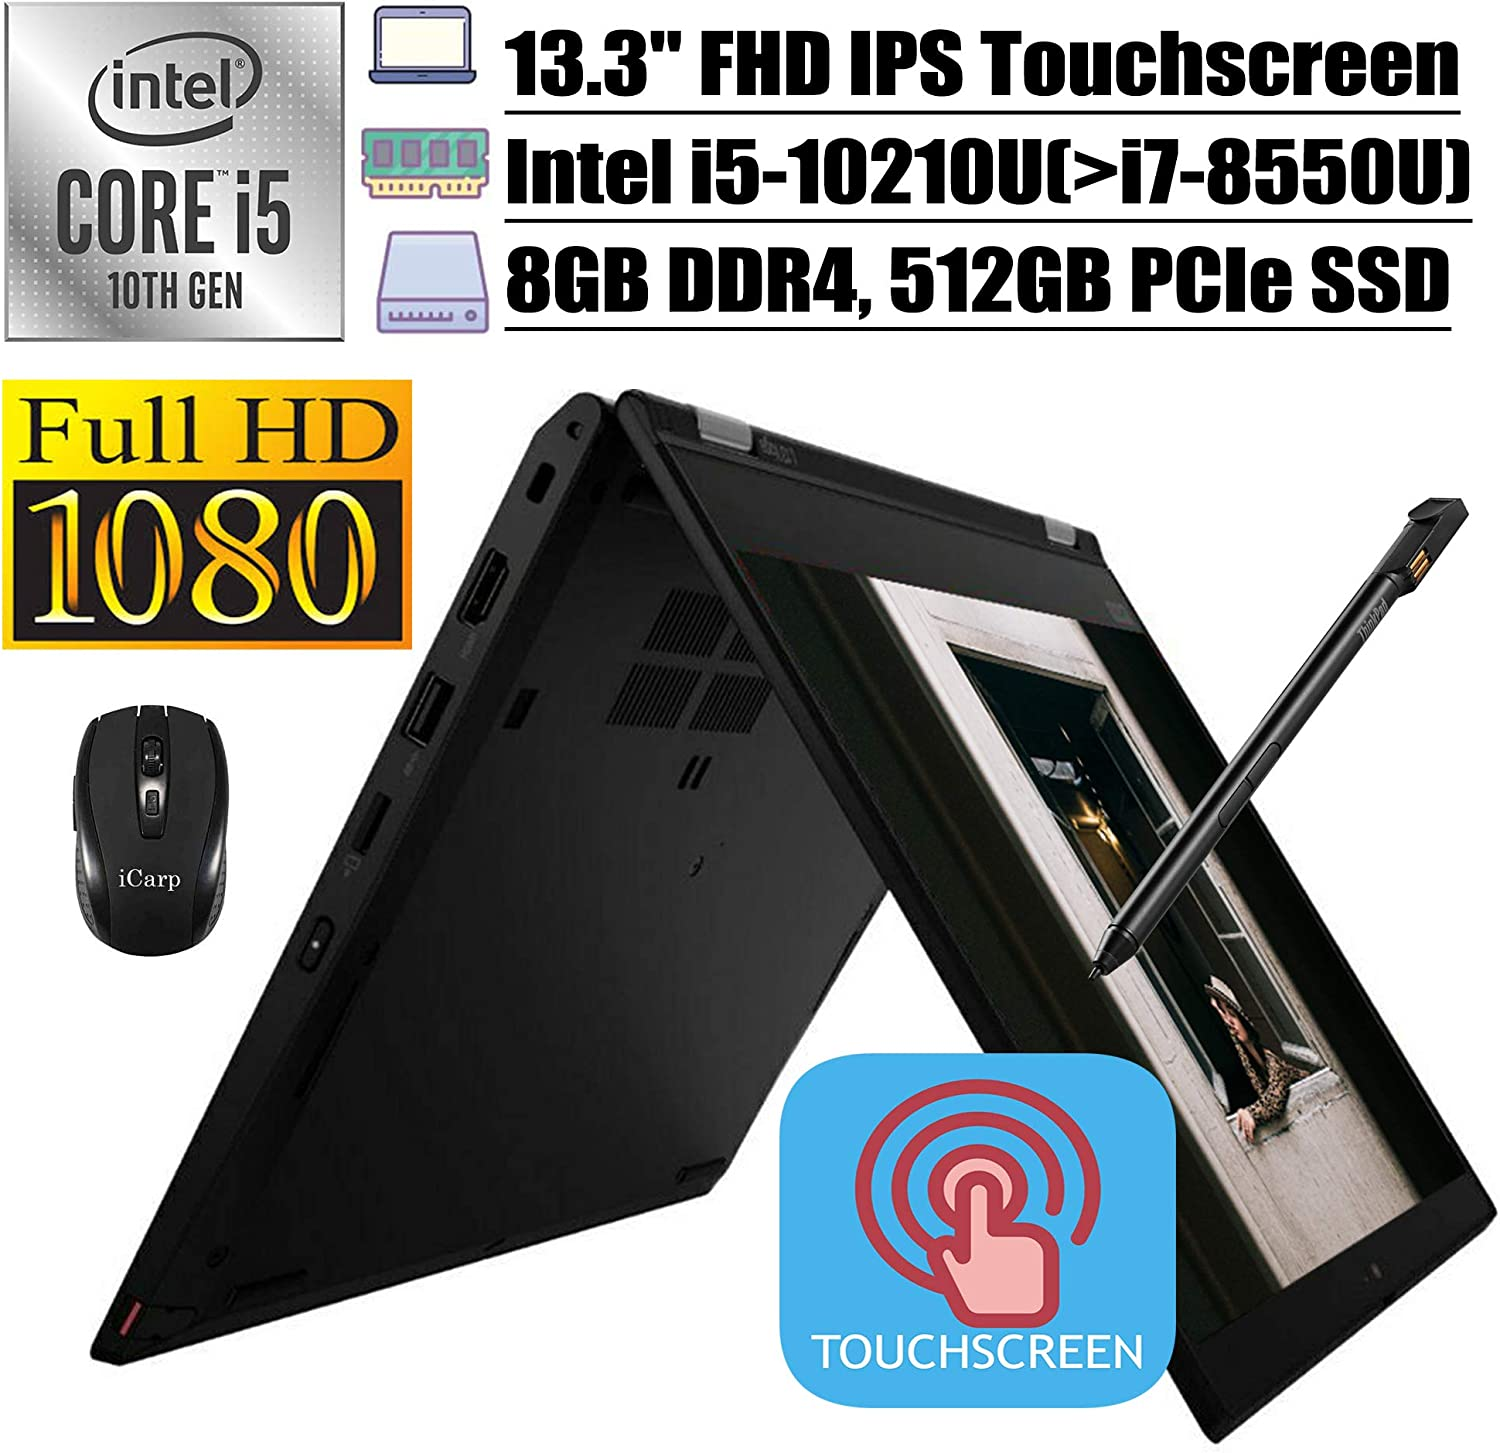 "2020 Flagship Lenovo ThinkPad L13 Yoga 2-in-1 Business Laptop, 13.3"" FHD IPS Touchscreen, 10th Gen Intel 4-Core i5-10210U(>i7-8550U), 8GB DDR4 512GB PCIe SSD, Backlit FP PEN Win + iCarp Wireless Mouse"